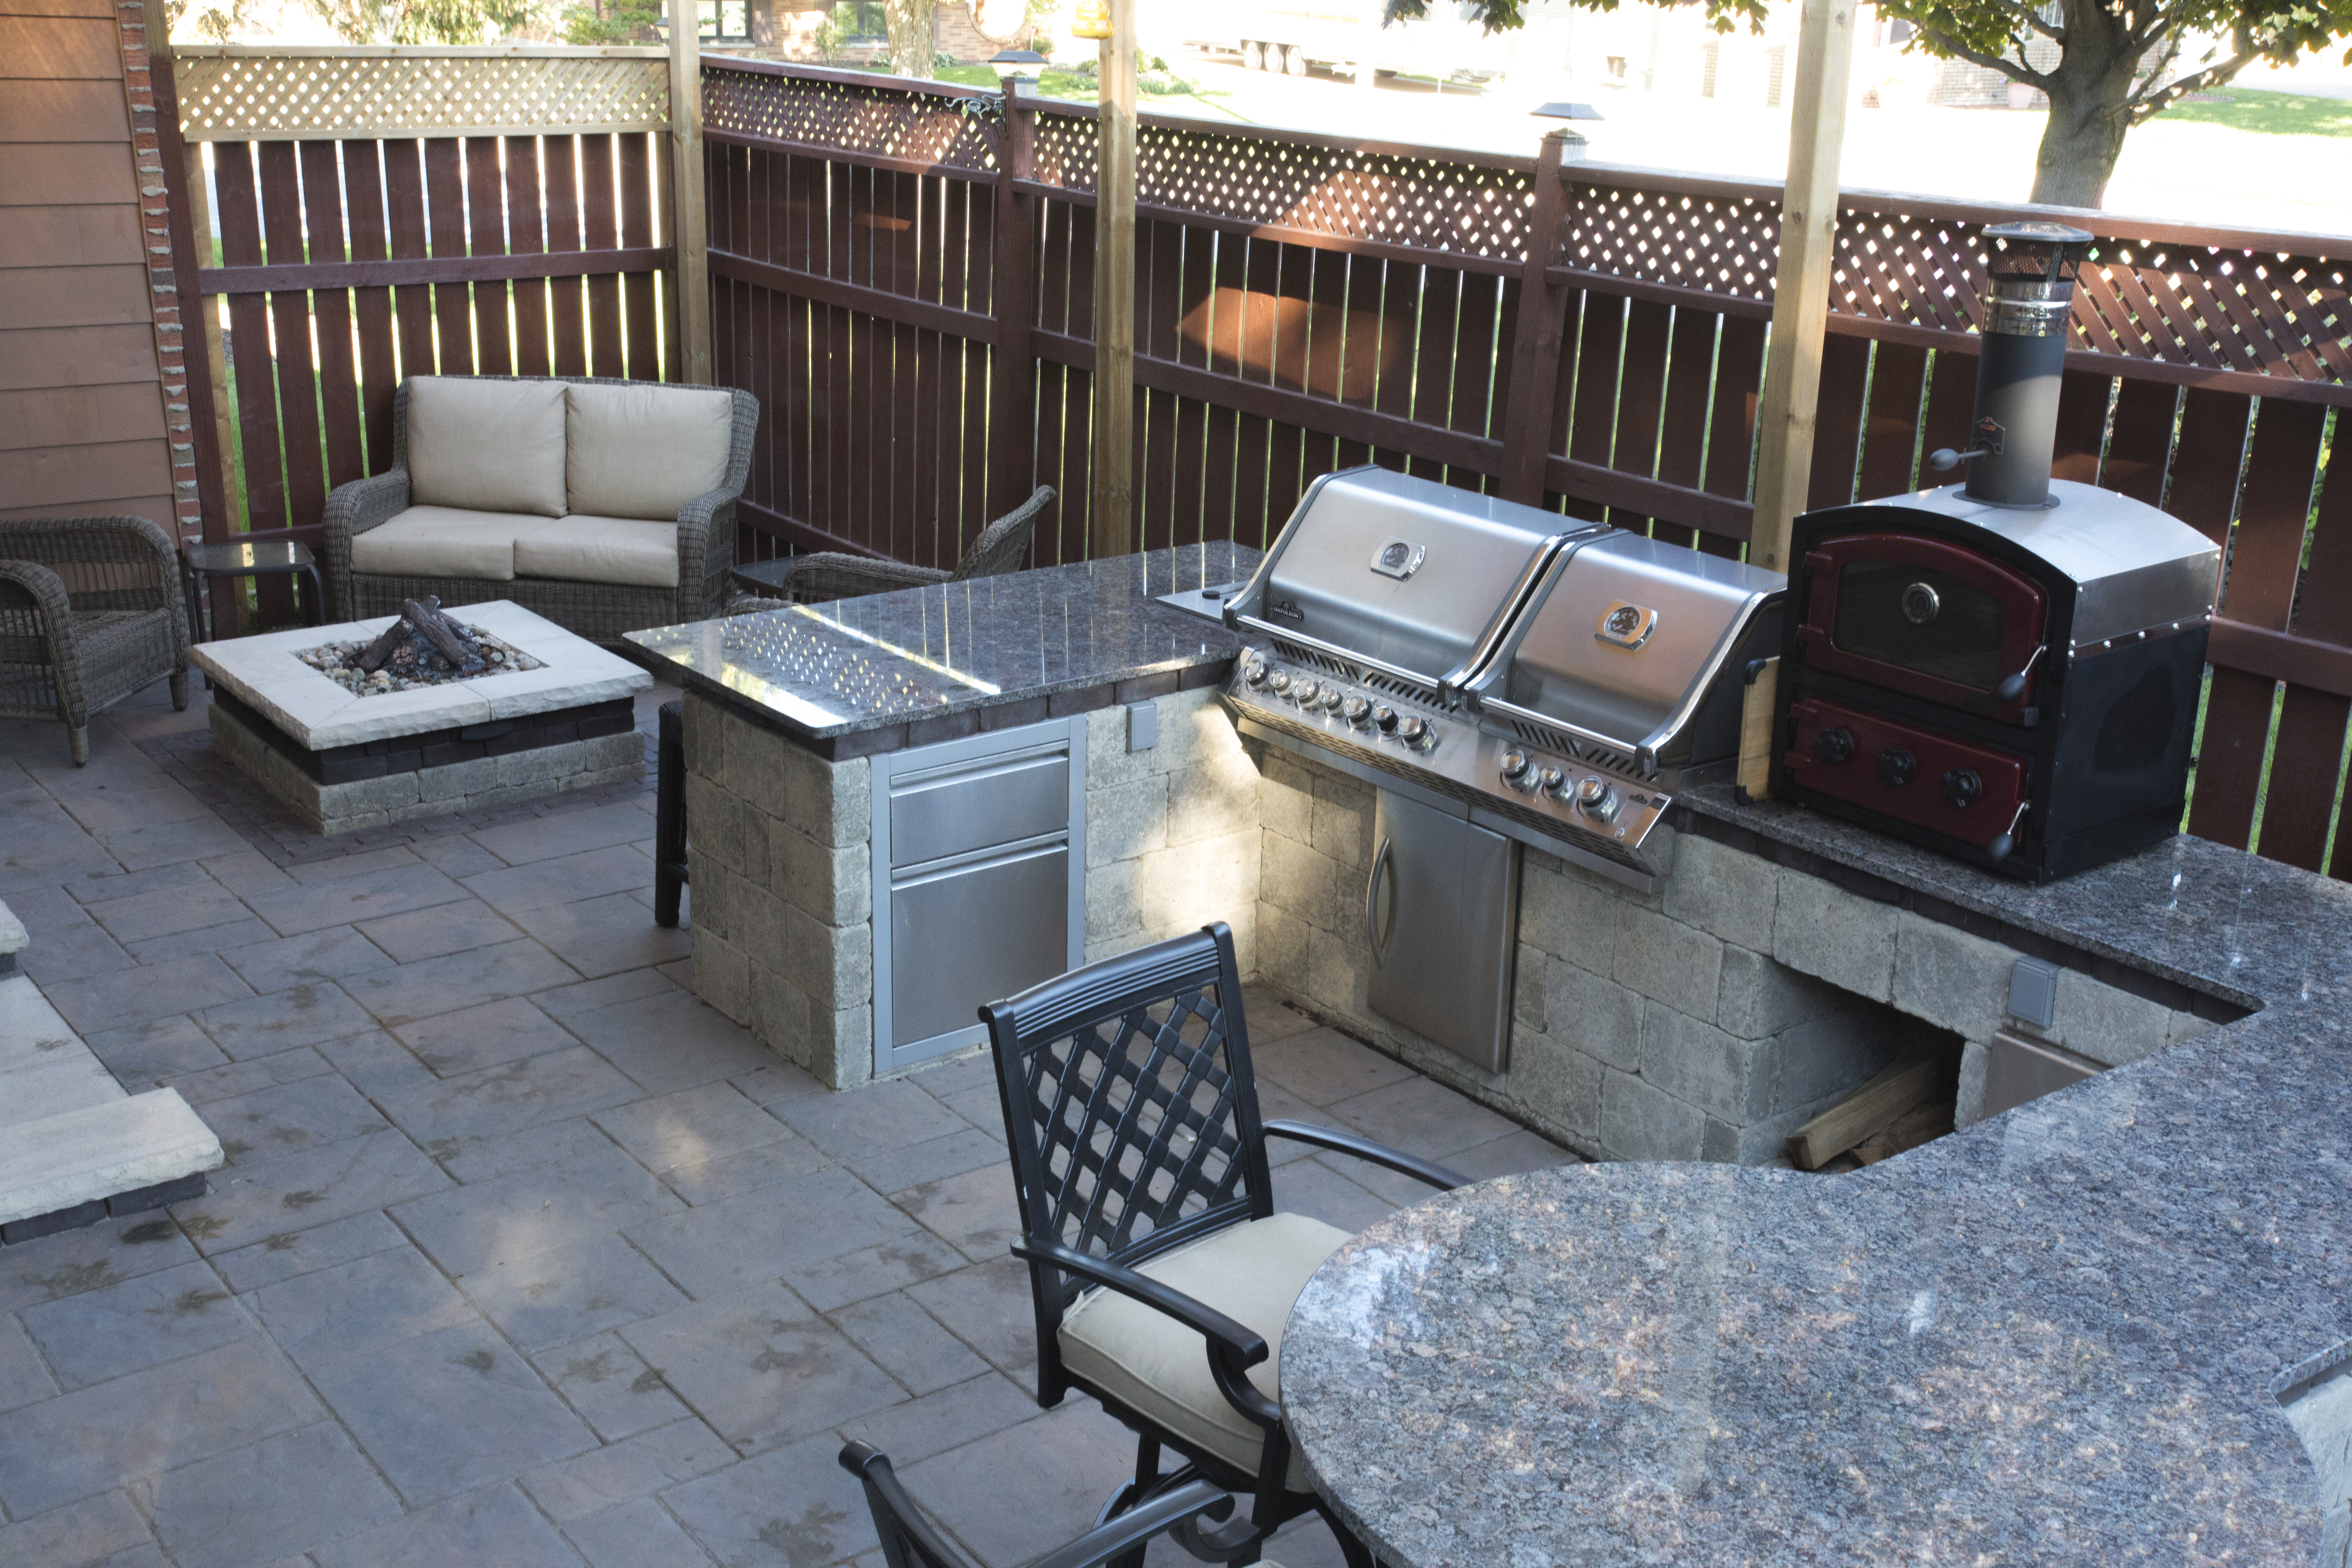 Creative Homescapes Outdoor Kitchens -  select outdoor kitchens